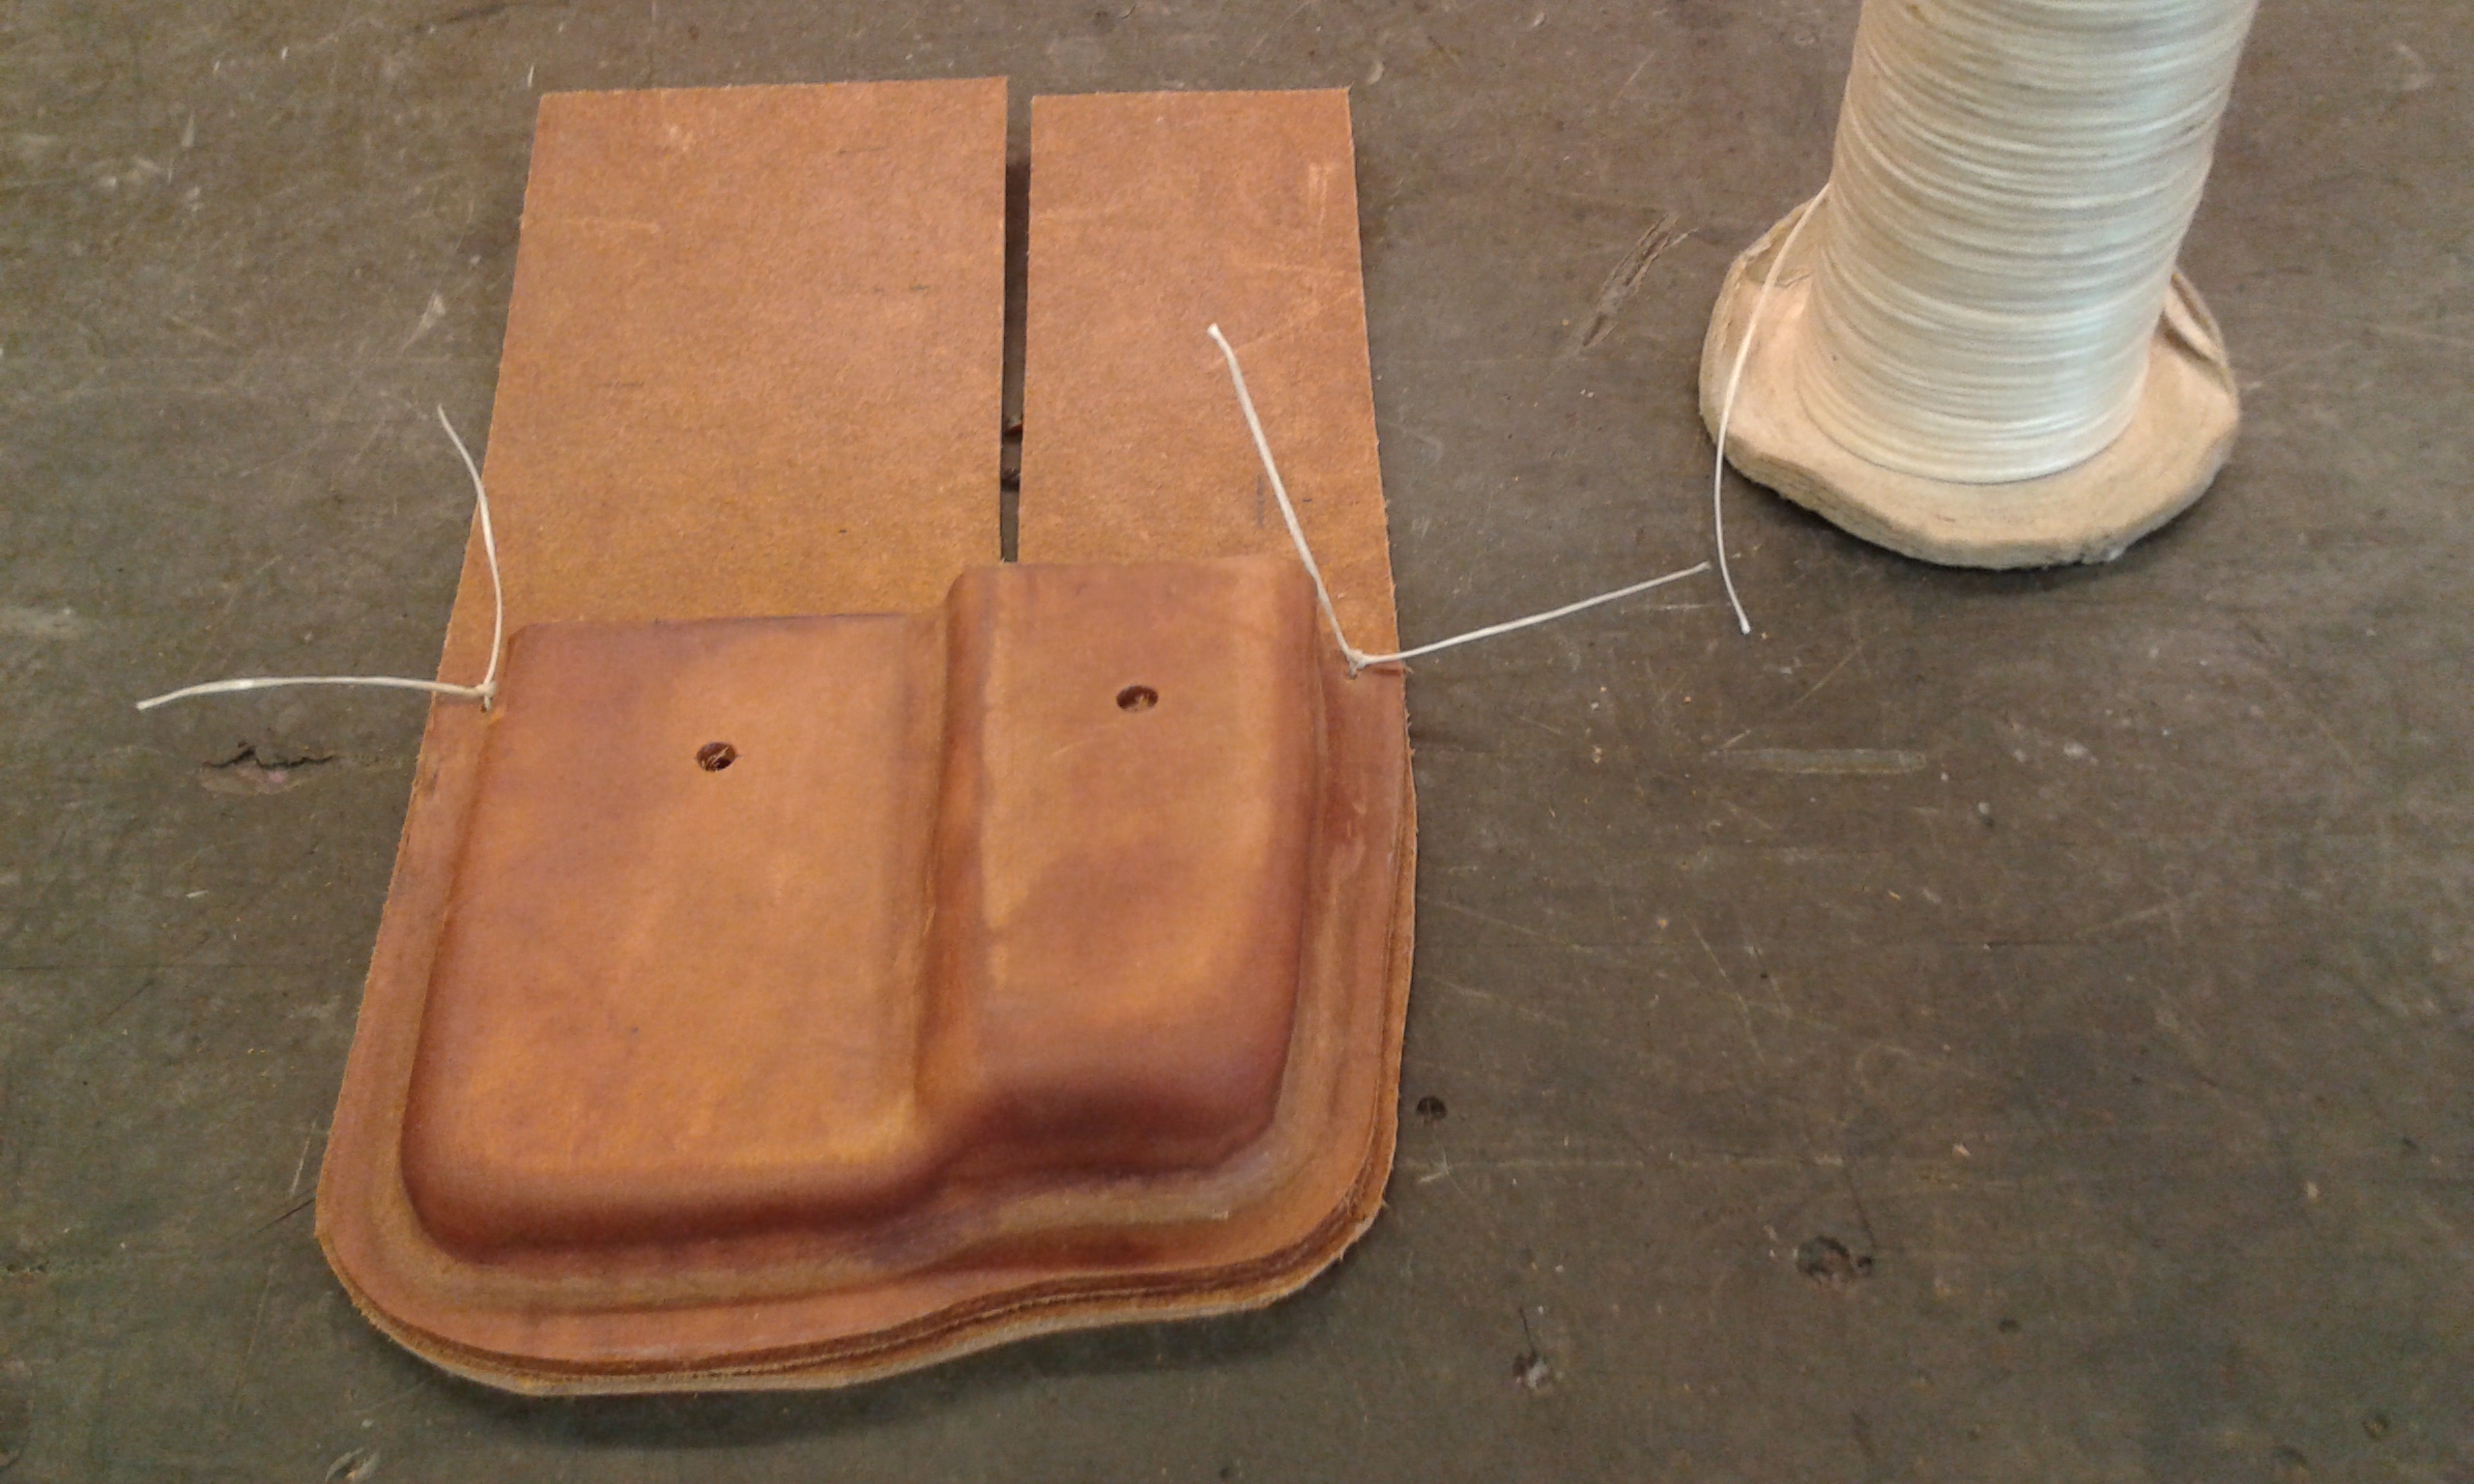 Picture of Holes for the Stitching.